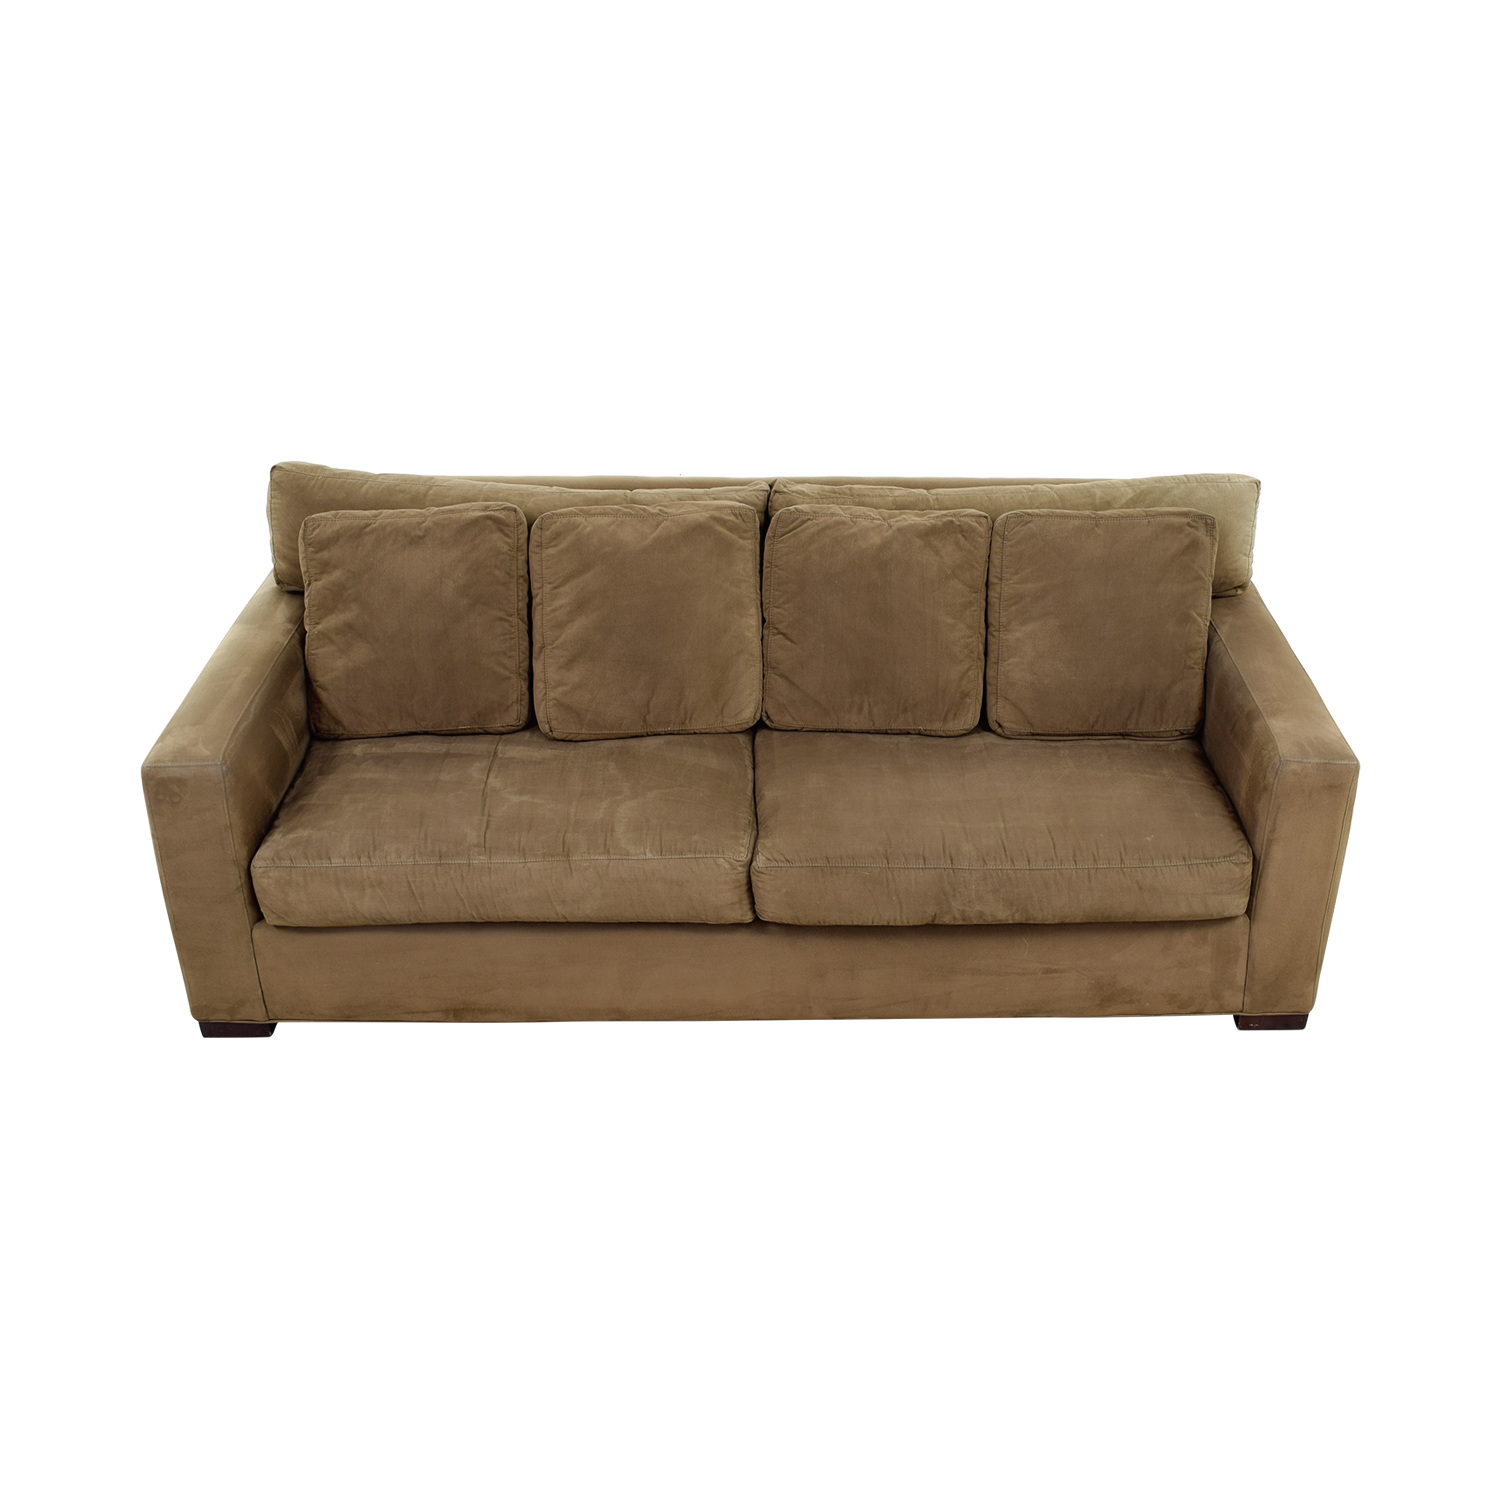 crate and barrel sofa cushion replacement modular sofas for small spaces 48 off rooms to go beige three